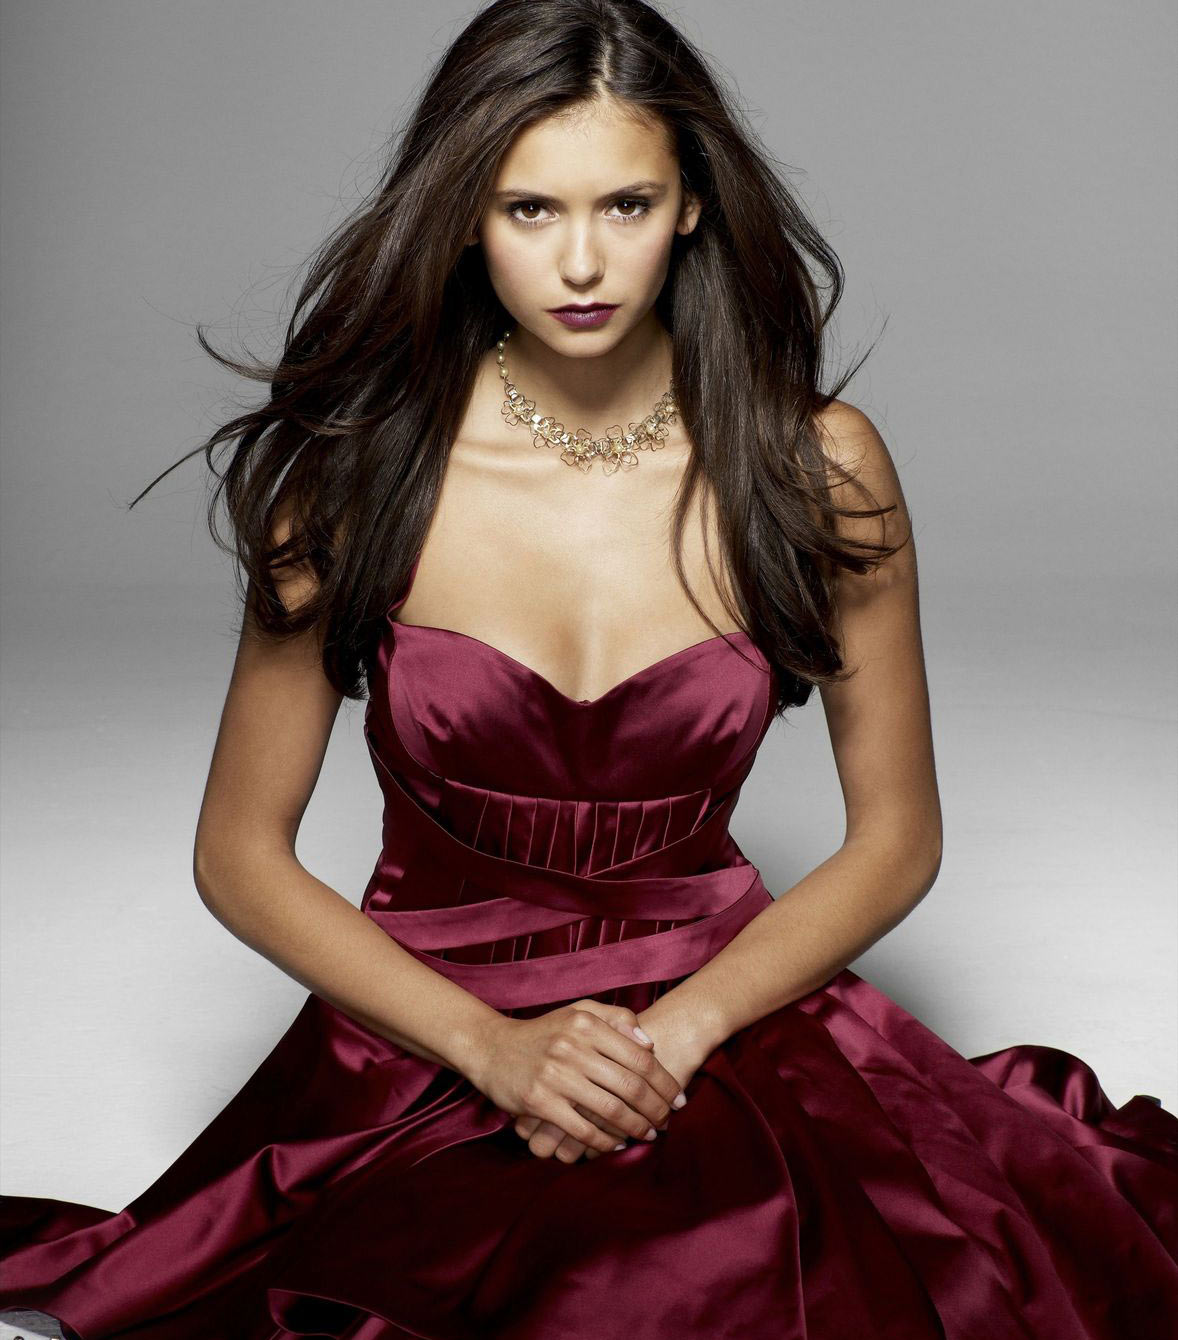 Nina Dobrev Wallpaper: Nina Dobrev Photo And Wallpapers